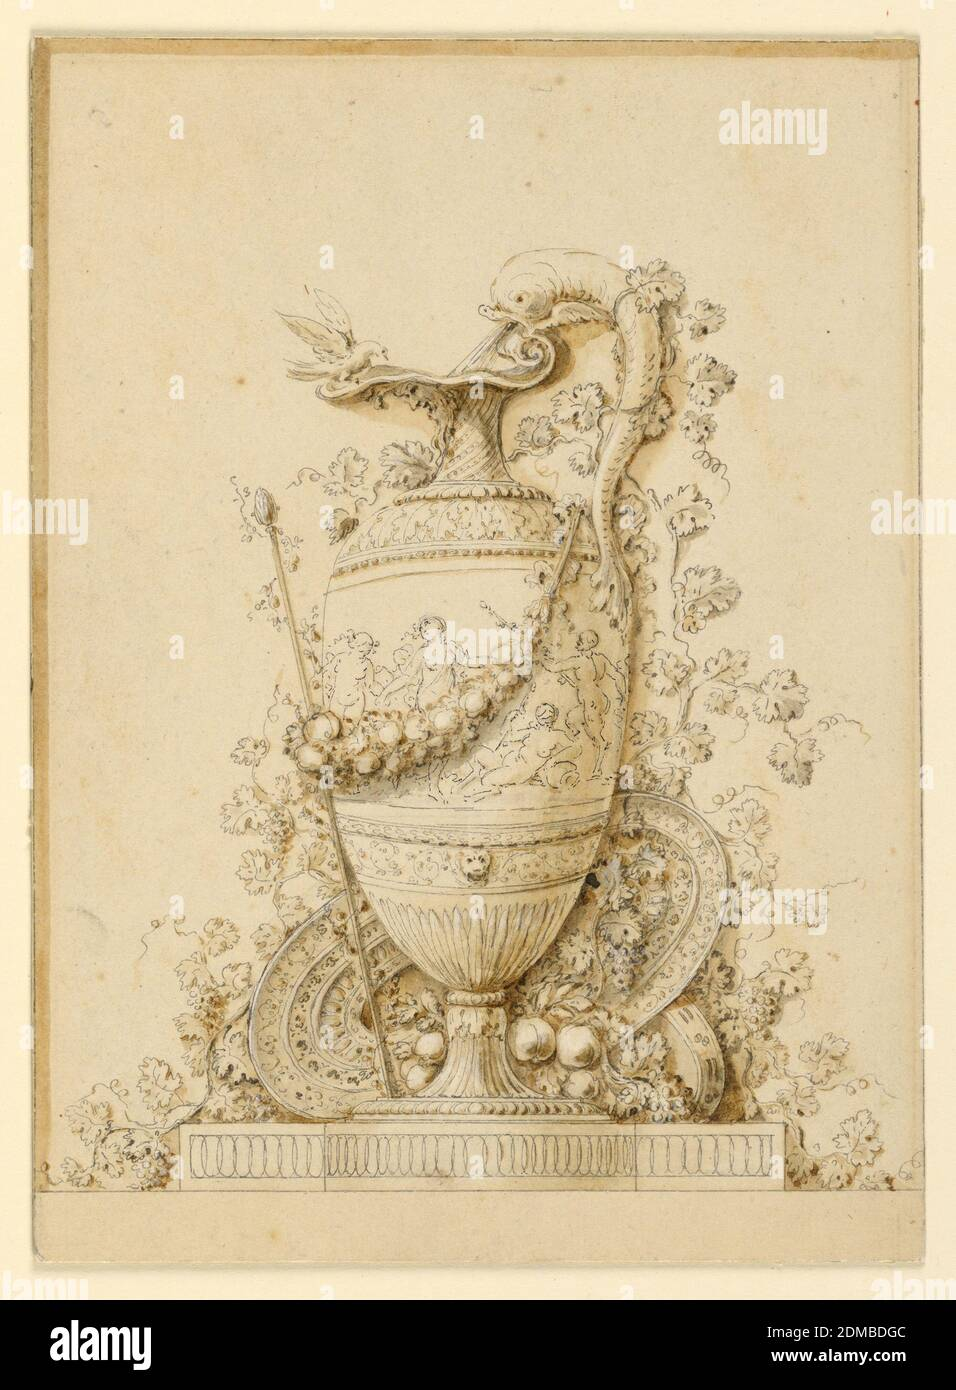 Design for a panel decoration showing a ewer, for a plate in the 'Recueil d' Ornements', Gilles Paul Cauvet, French, 1731–1788, Black chalk, pen and ink, brush and wash, A thyrsus is fastened to a pitcher by a festoon. The pitcher shows bacchic scenes; water pours from the dolphin forming the handle. A grape vine grows around it. Plates and fruit on the base., France, ca. 1775, Drawing Stock Photo